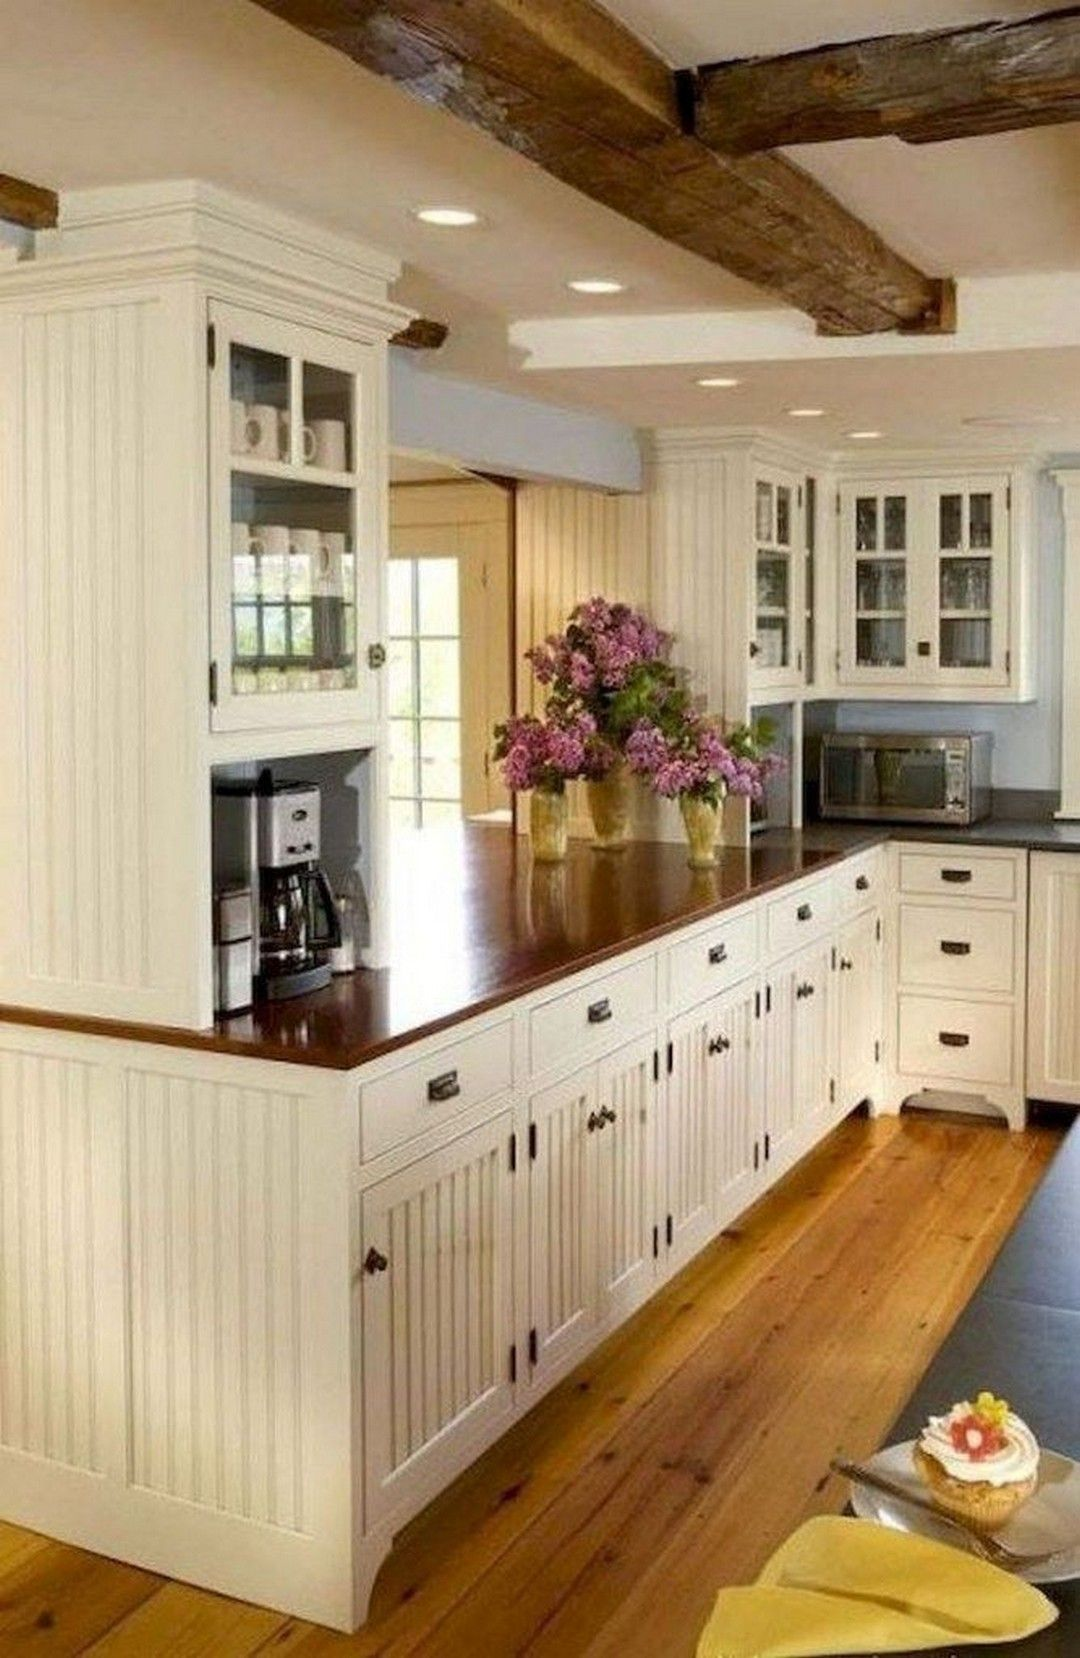 Modern Farmhouse Kitchen Ideas to Inspire You #modernfarmhousekitchens